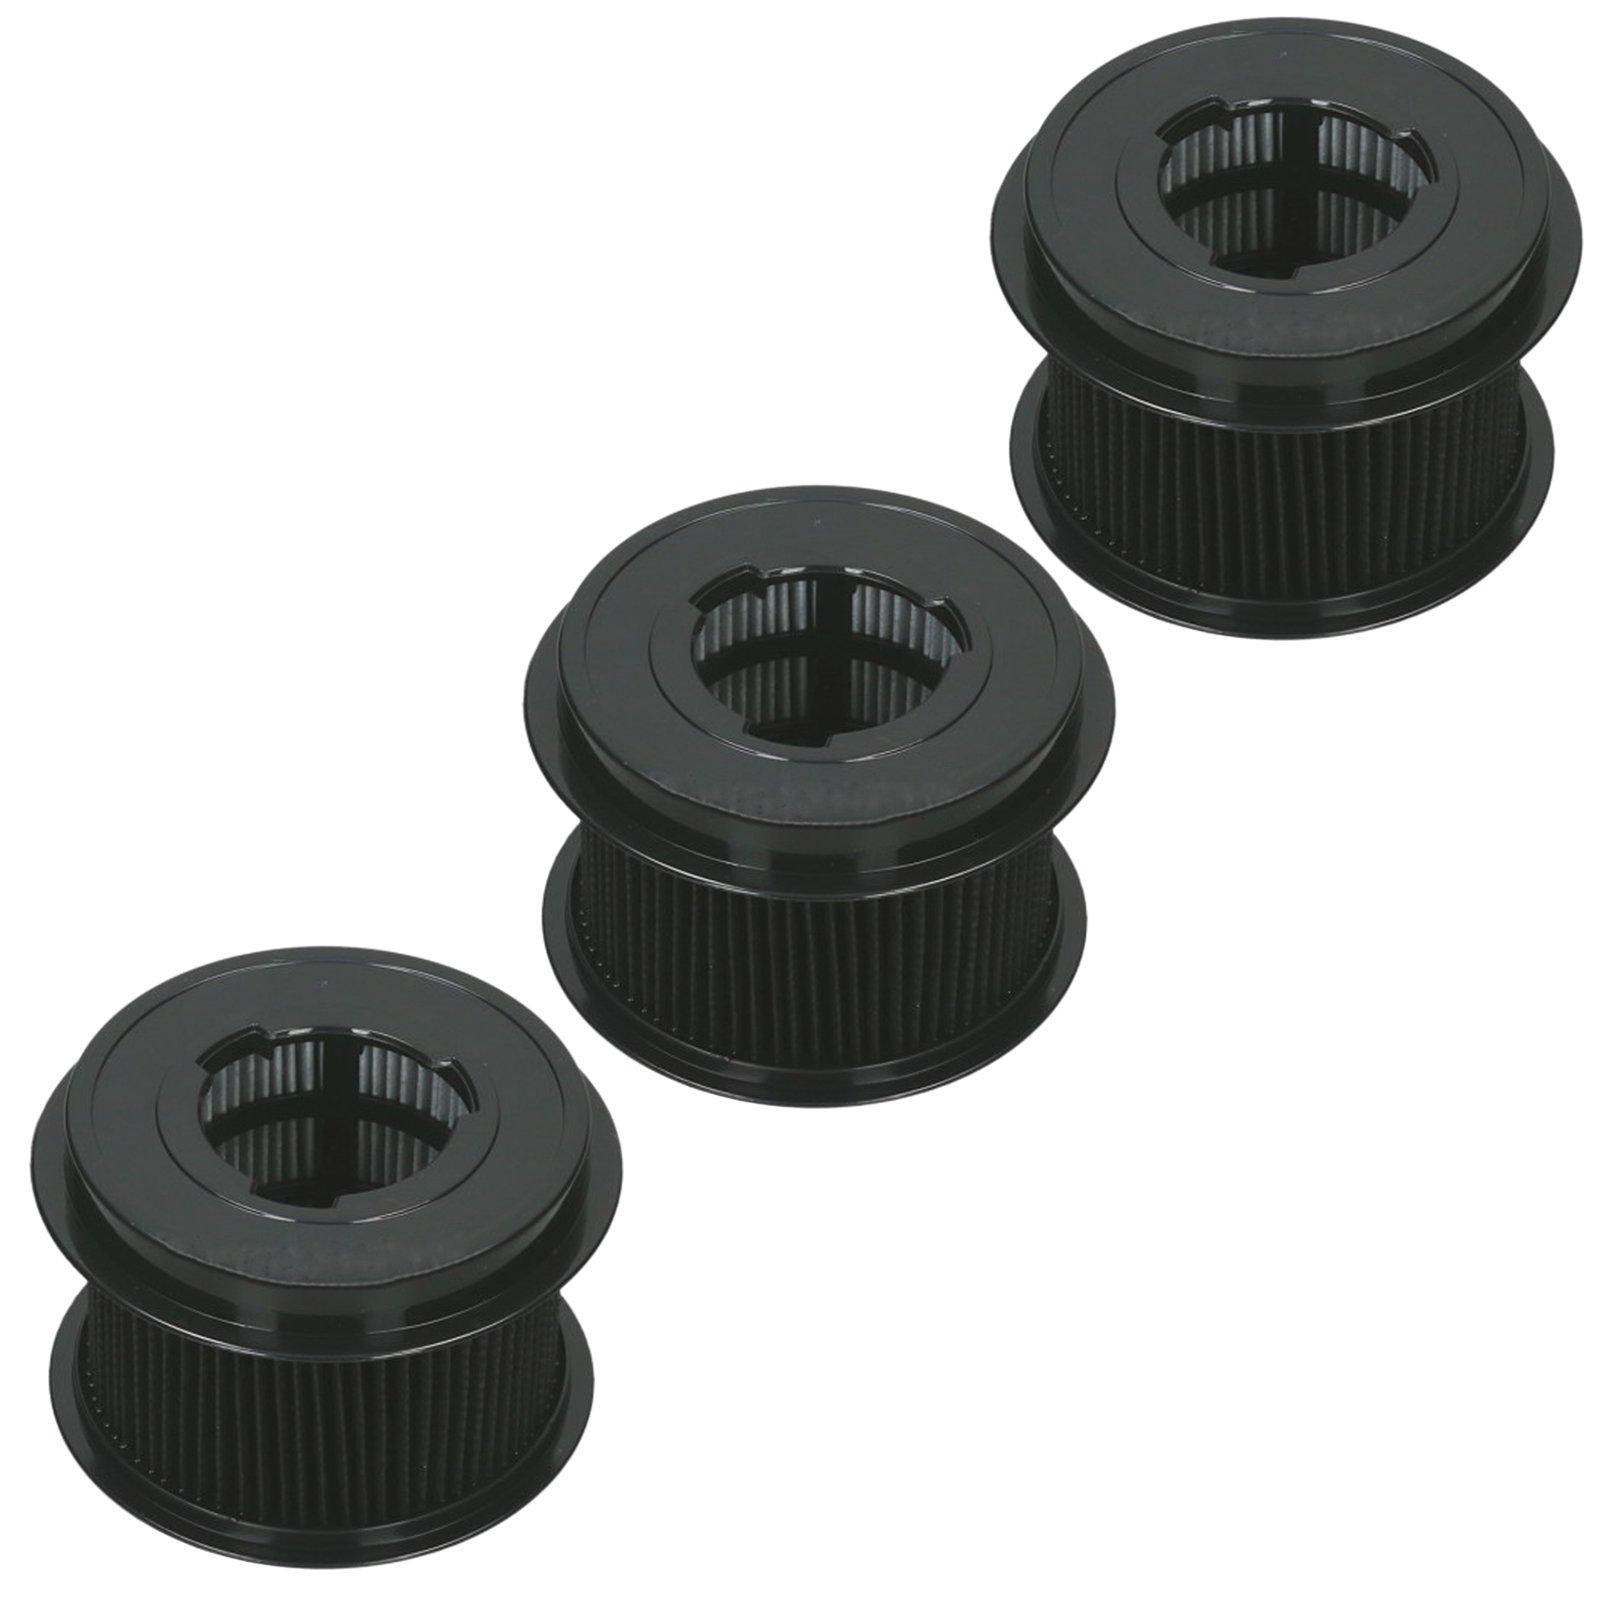 Spares2go Pleated Circular HEPA Filter for Bissell PowerForce CleanView Vacuum Cleaner (Pack of 3) by Spares2go